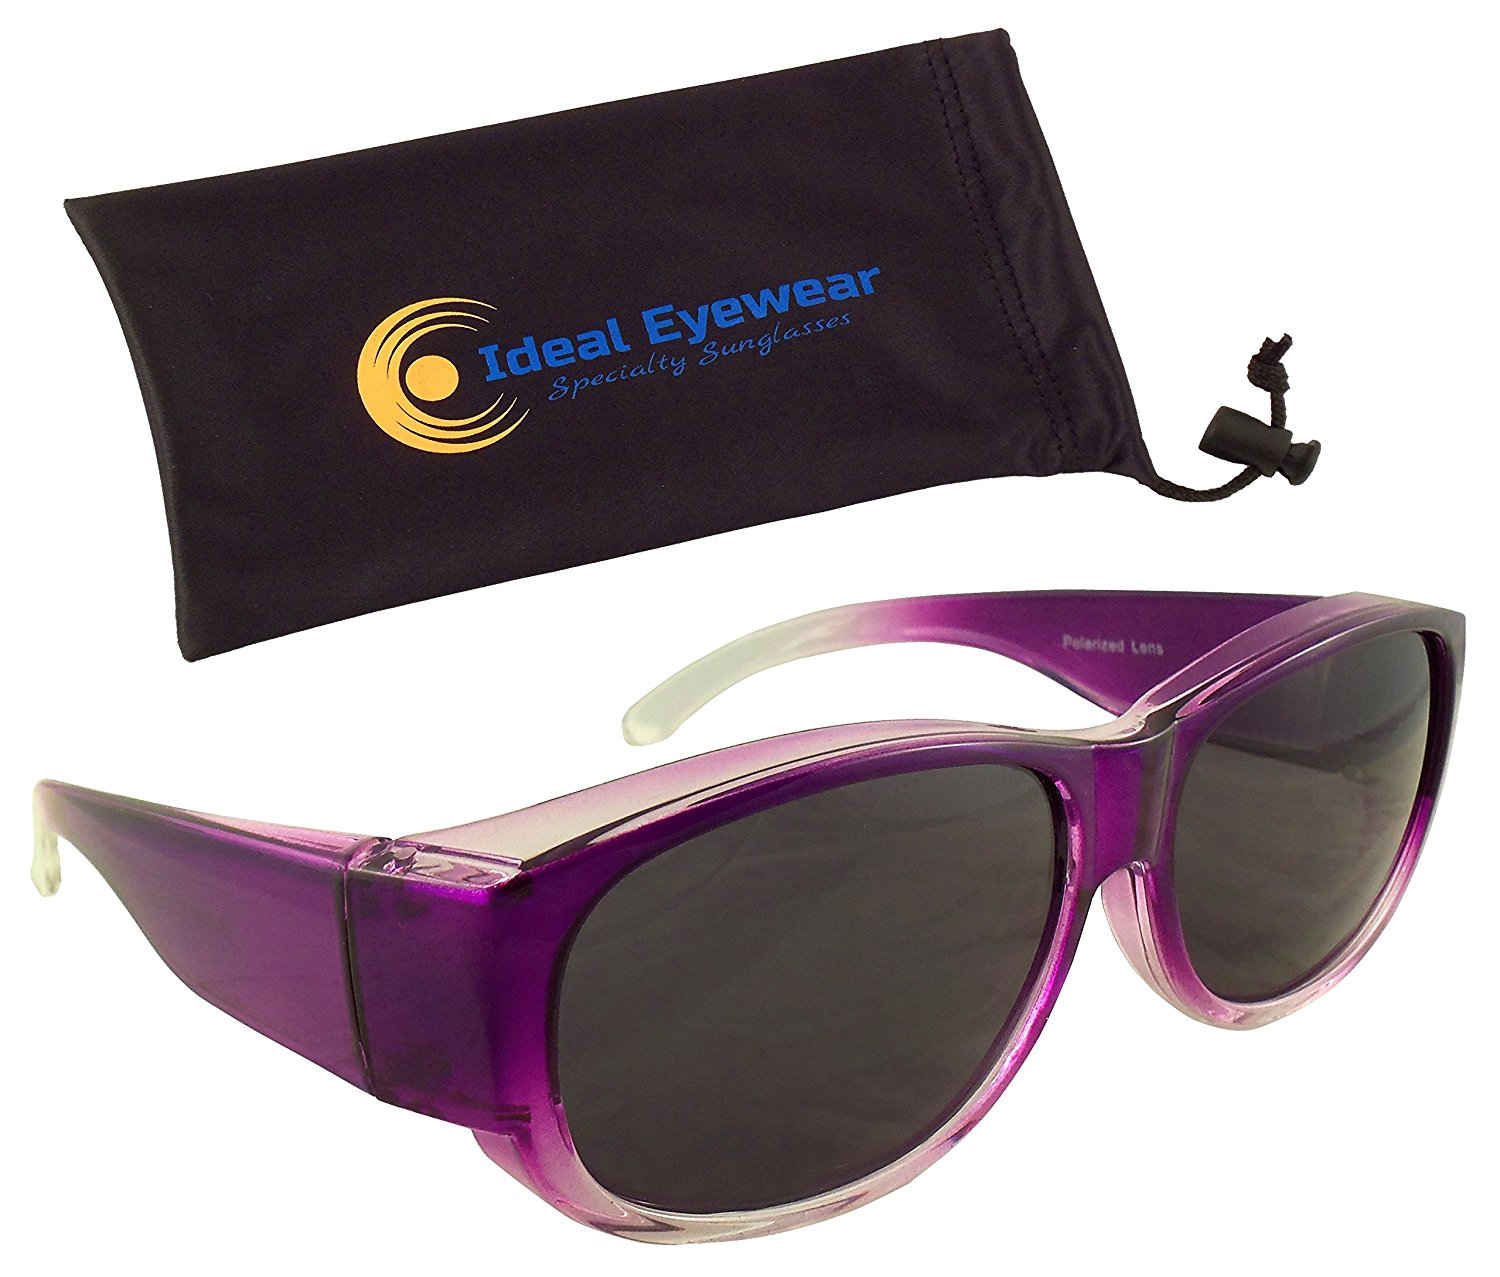 8e53a13d7faa Get Quotations · Womens Ombre Fit Over Sunglasses by Ideal Eyewear - Wear  Over Prescription Glasses - Over Eyeglasses